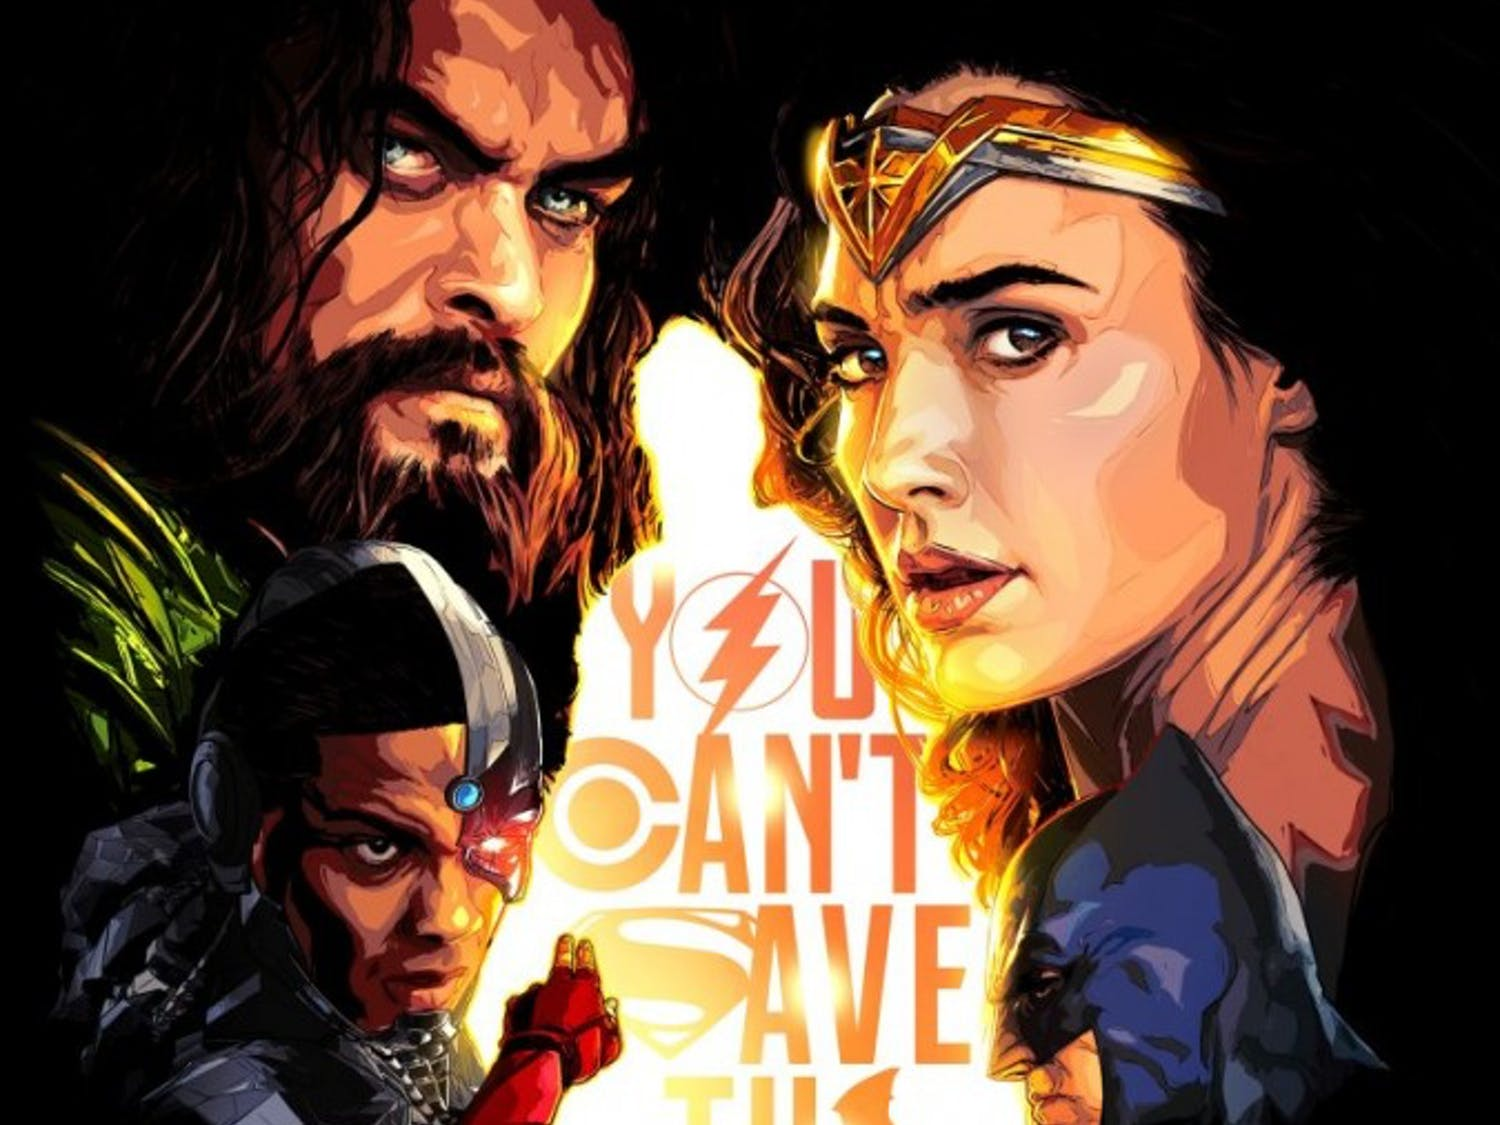 """While its heroes entertain, """"Justice League"""" suffers from tonal inconsistencies and lacks complexity."""